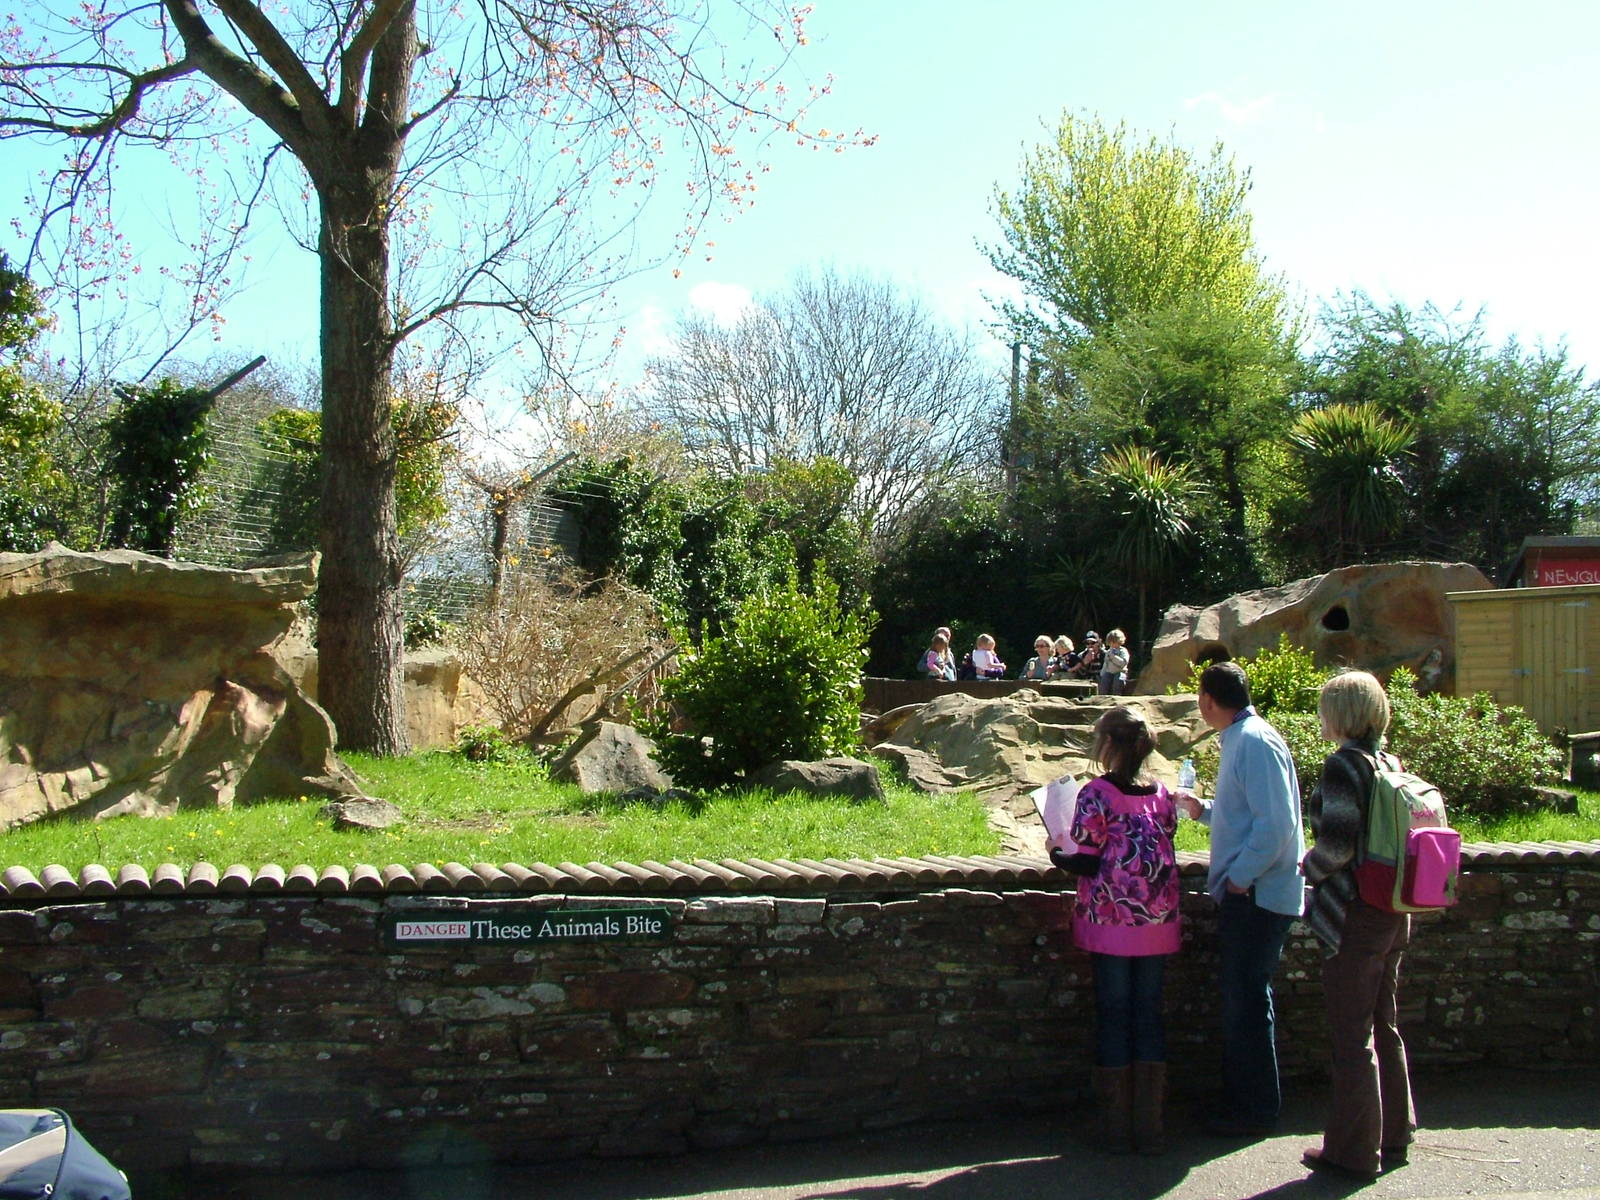 newquay chat Go wild at newquay zoo: get closer to hundreds of species at the zoo children's play area, events, good food & easy access a perfect day out for the family.